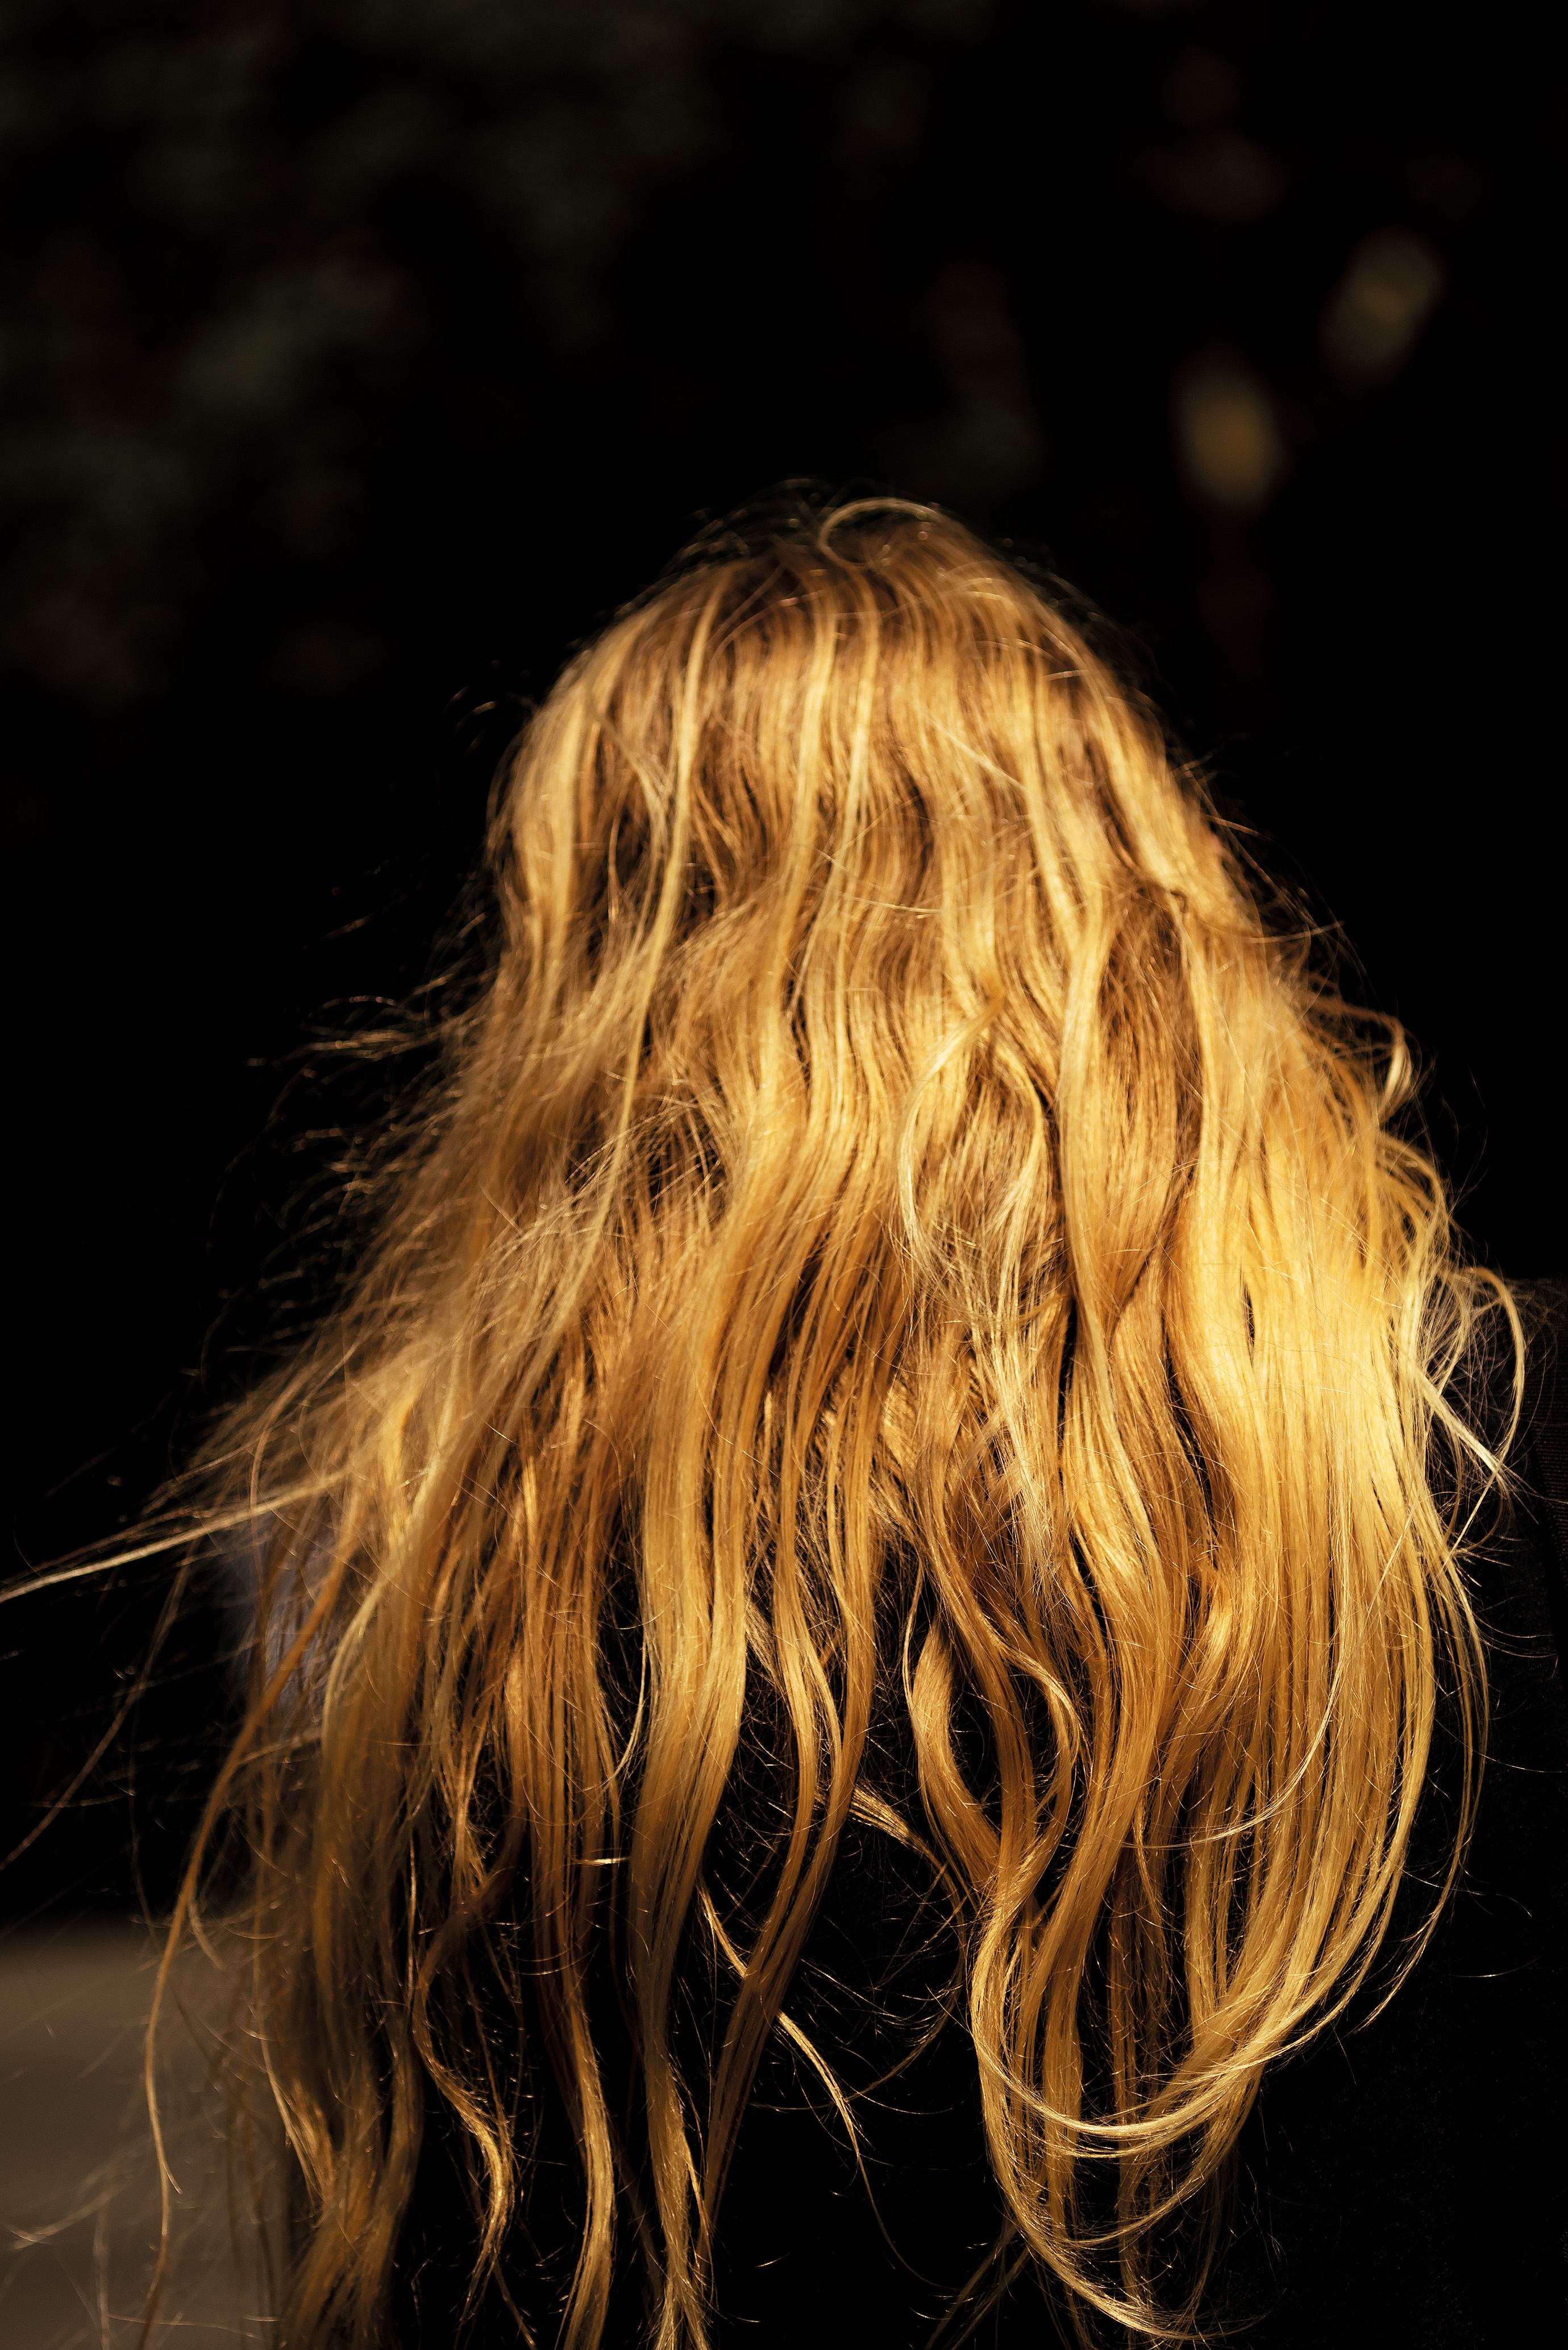 the back of a red headed woman with long curly hair, dark background